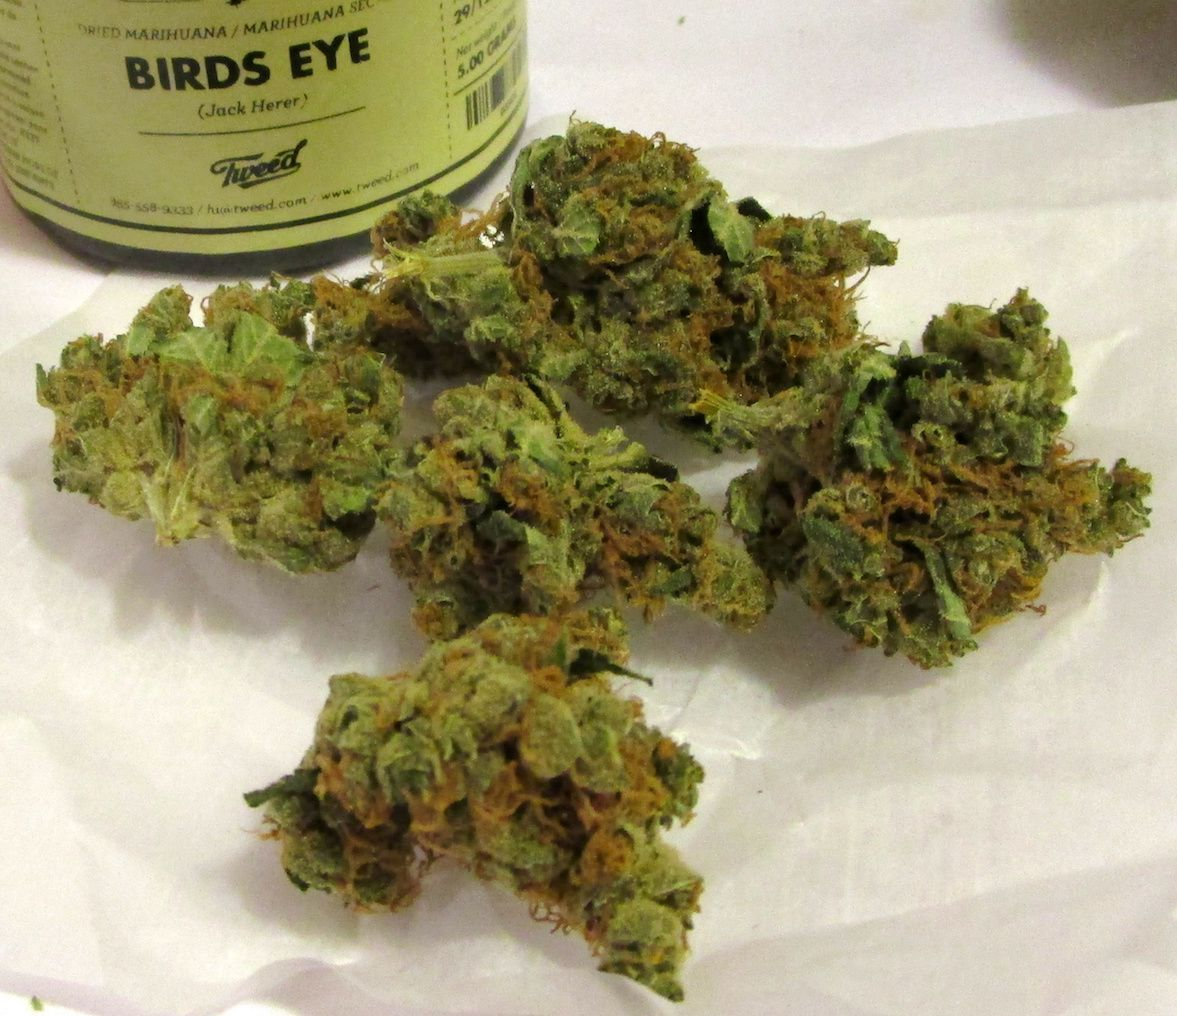 This potent sativa is a phenotype of Jack Herer grown by Tweed, Inc., and it delivers a potent cerebral high that is not unlike its sibling. Patients use this strain report that it soothes the mind with its euphoric and creative head effect and its subtly stimulating body effect. This strain is great for all day medication as it provides a strong motivating euphoria that makes all work seem less daunting. This strain's buds are small and popcorn-shaped pale green buds that are coated in a…